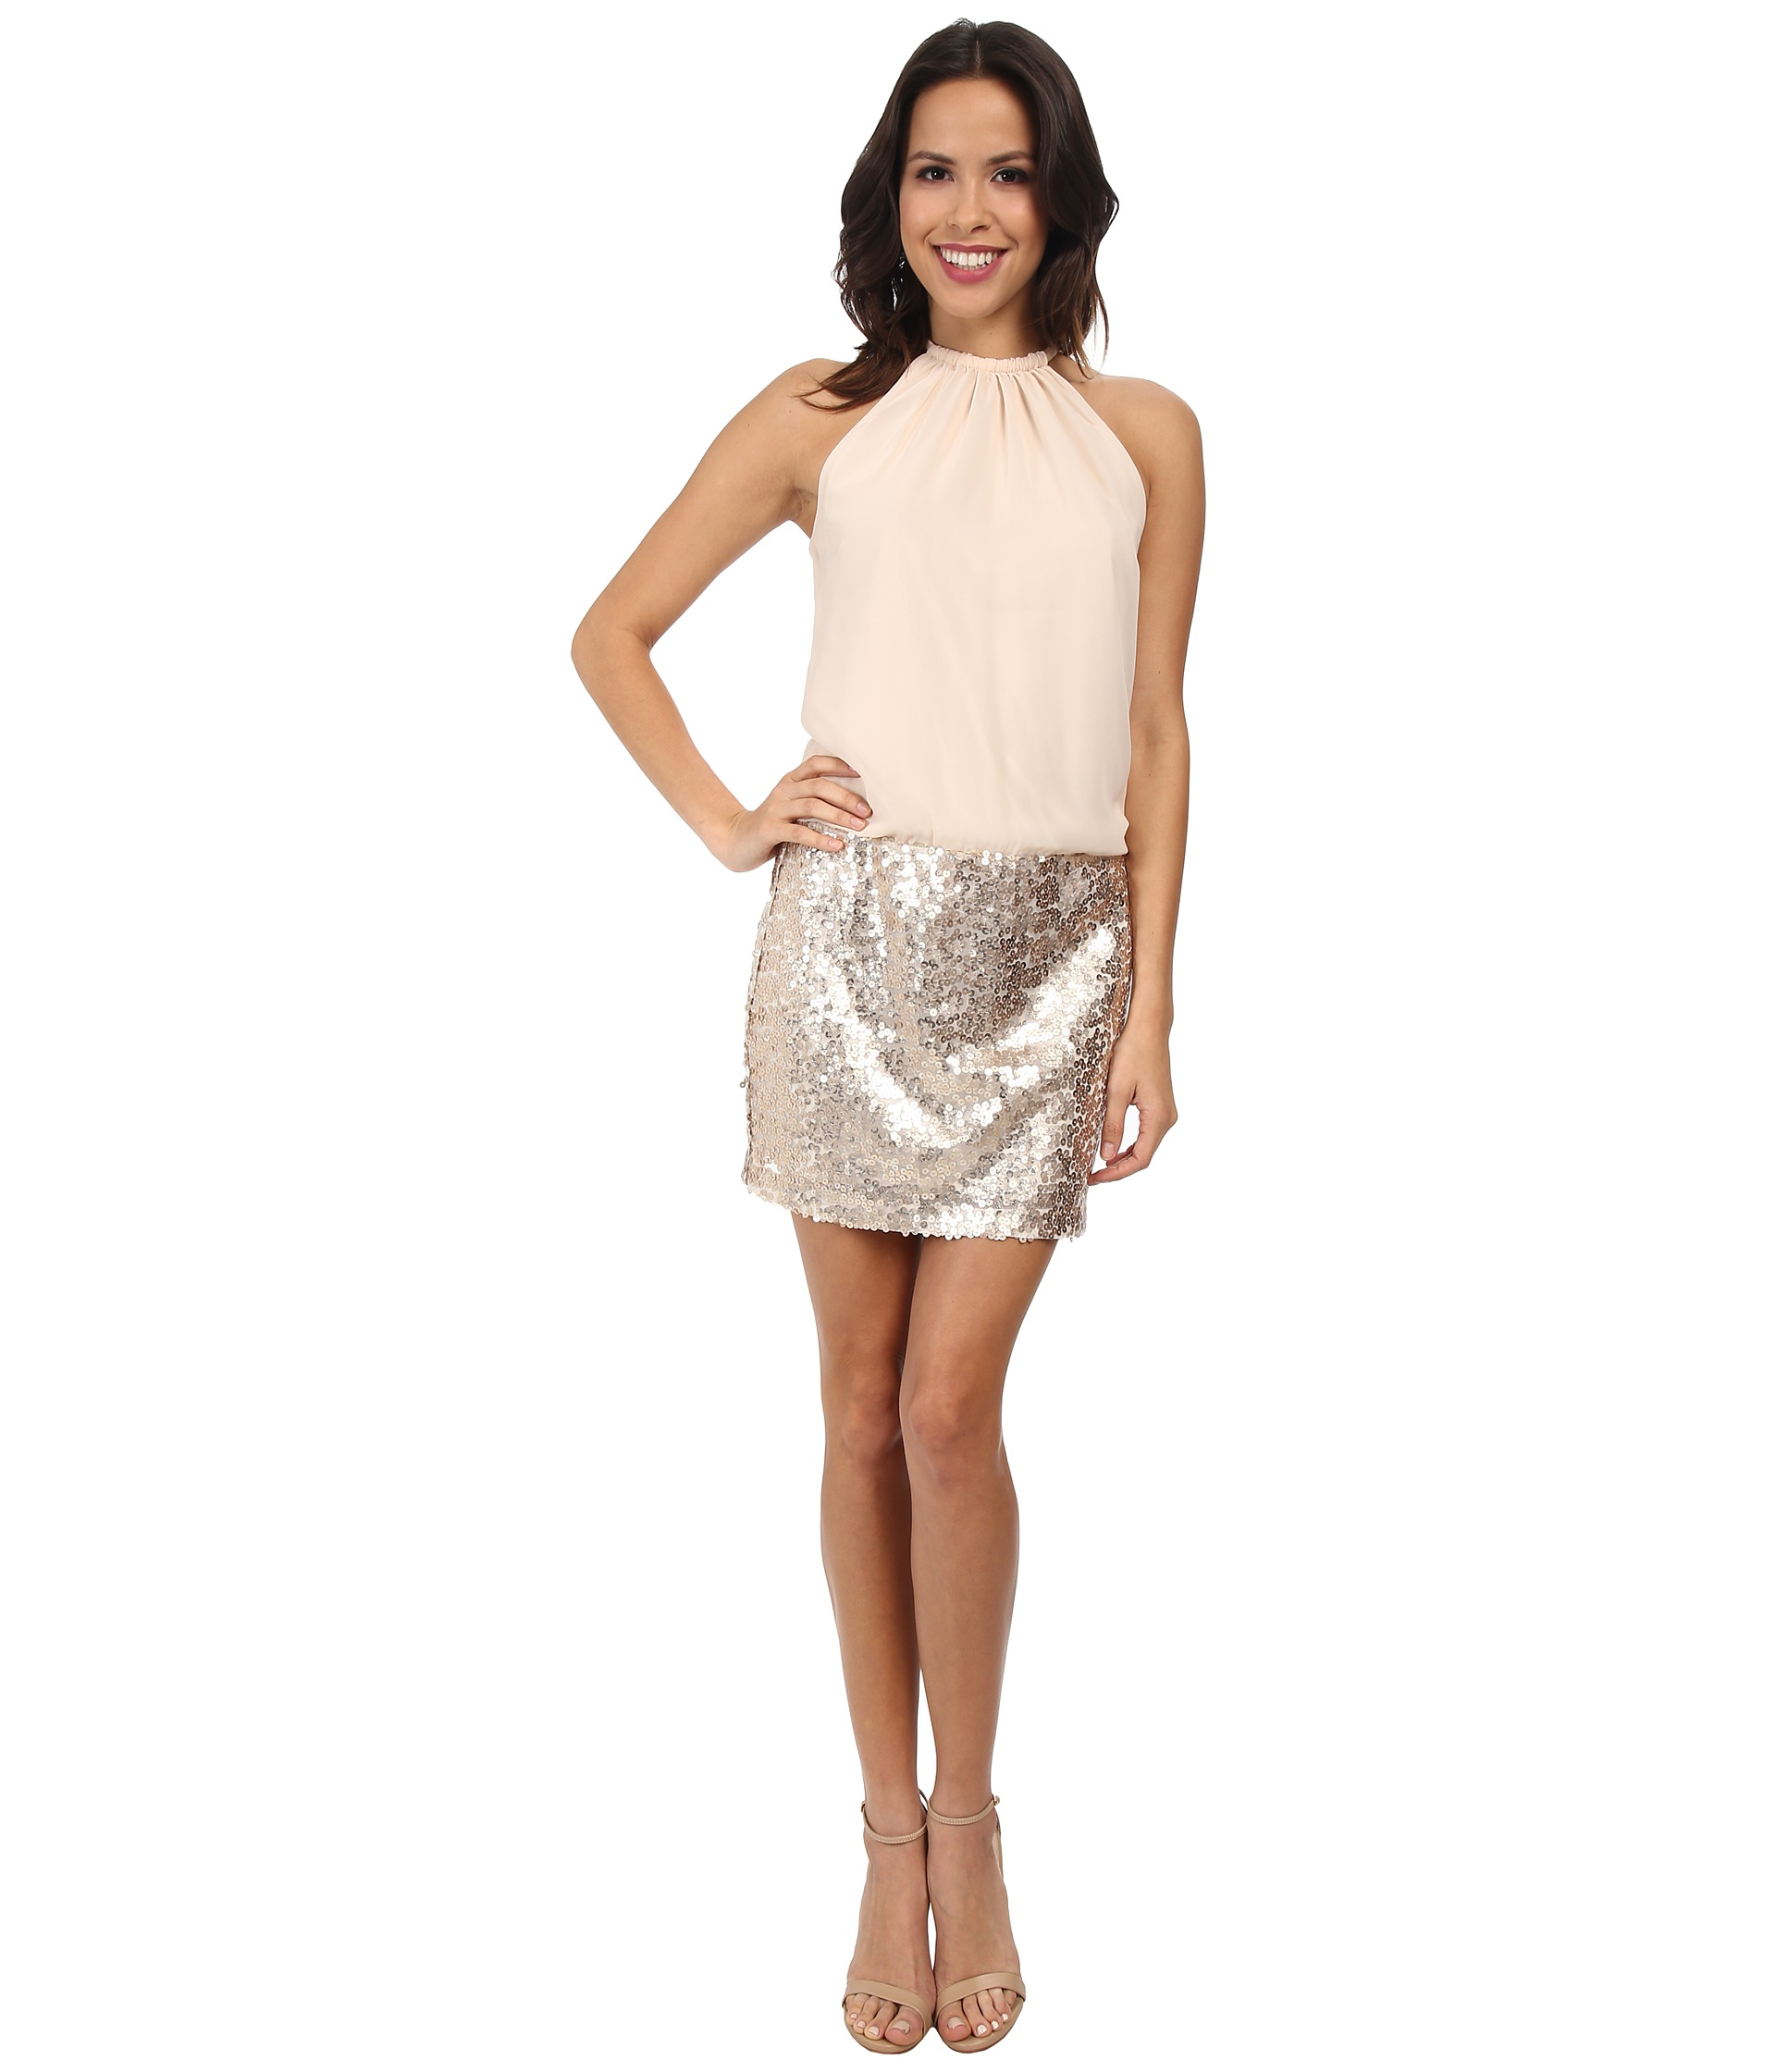 Jessica simpson Blousen Dress W/ Sequin Skirt in Pink - Lyst